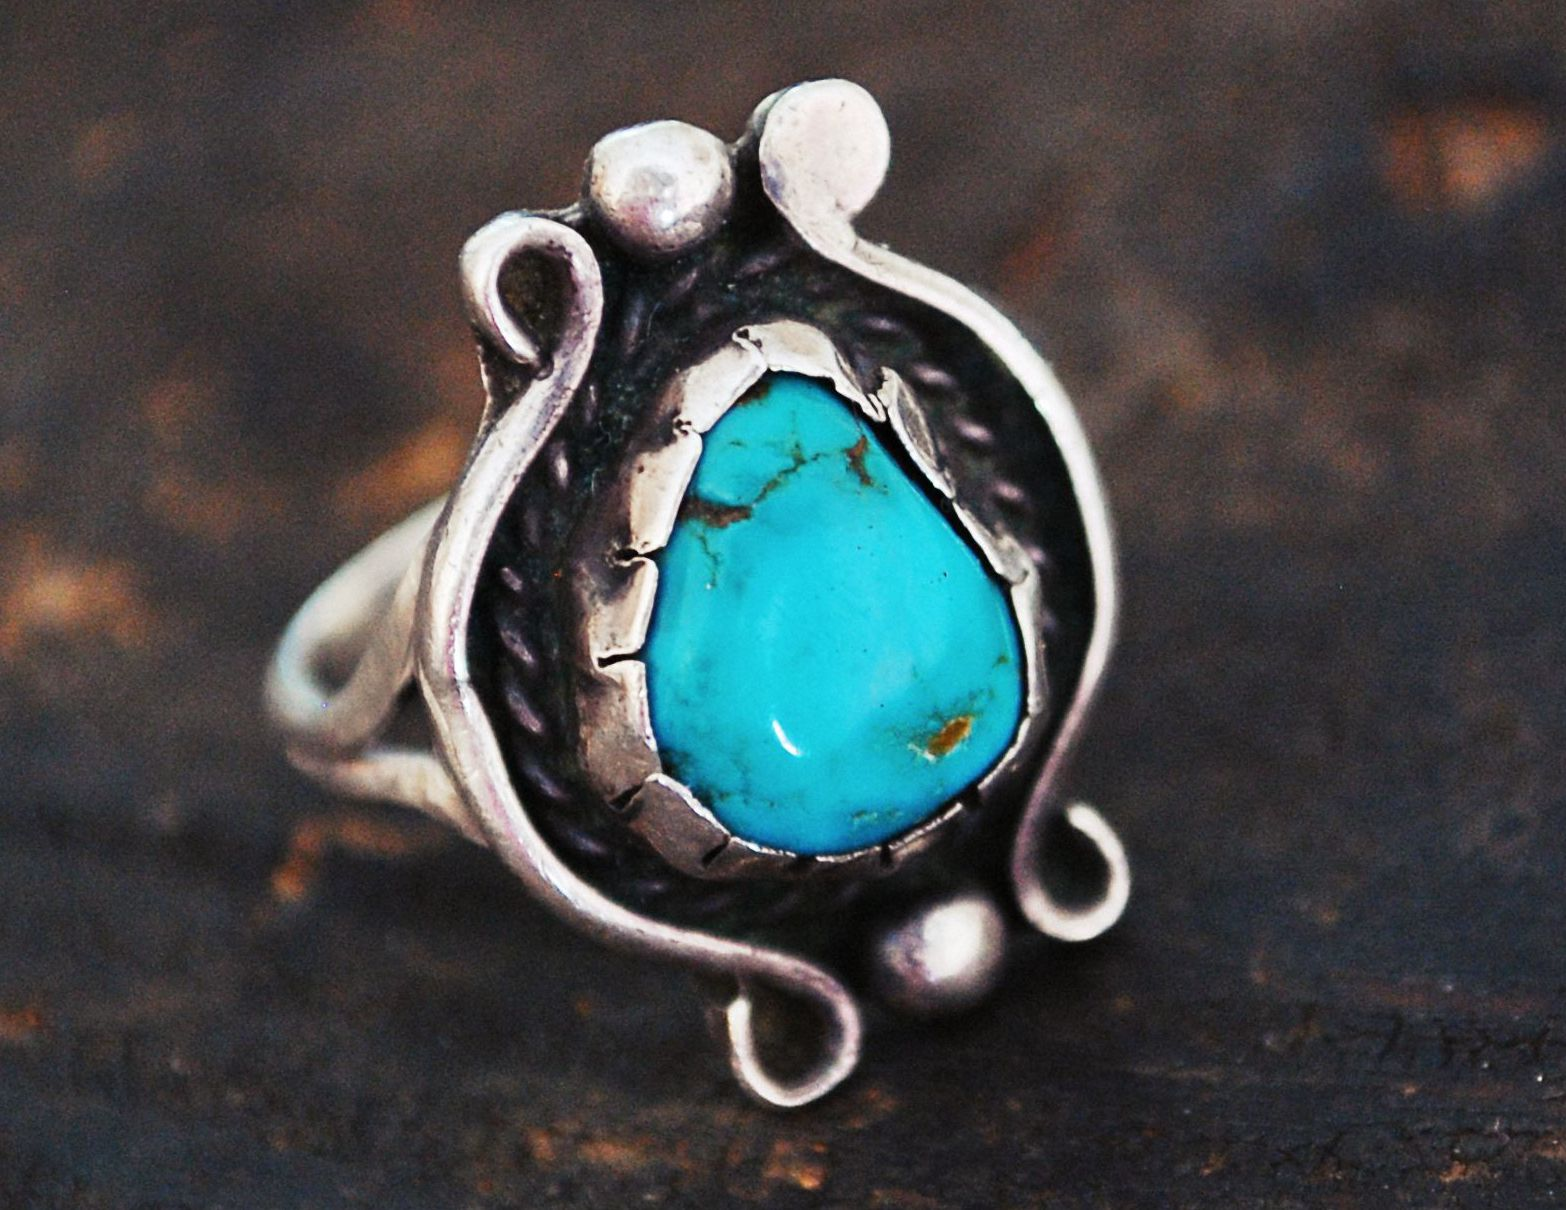 Native American Navajo Turquoise Ring - Size 8